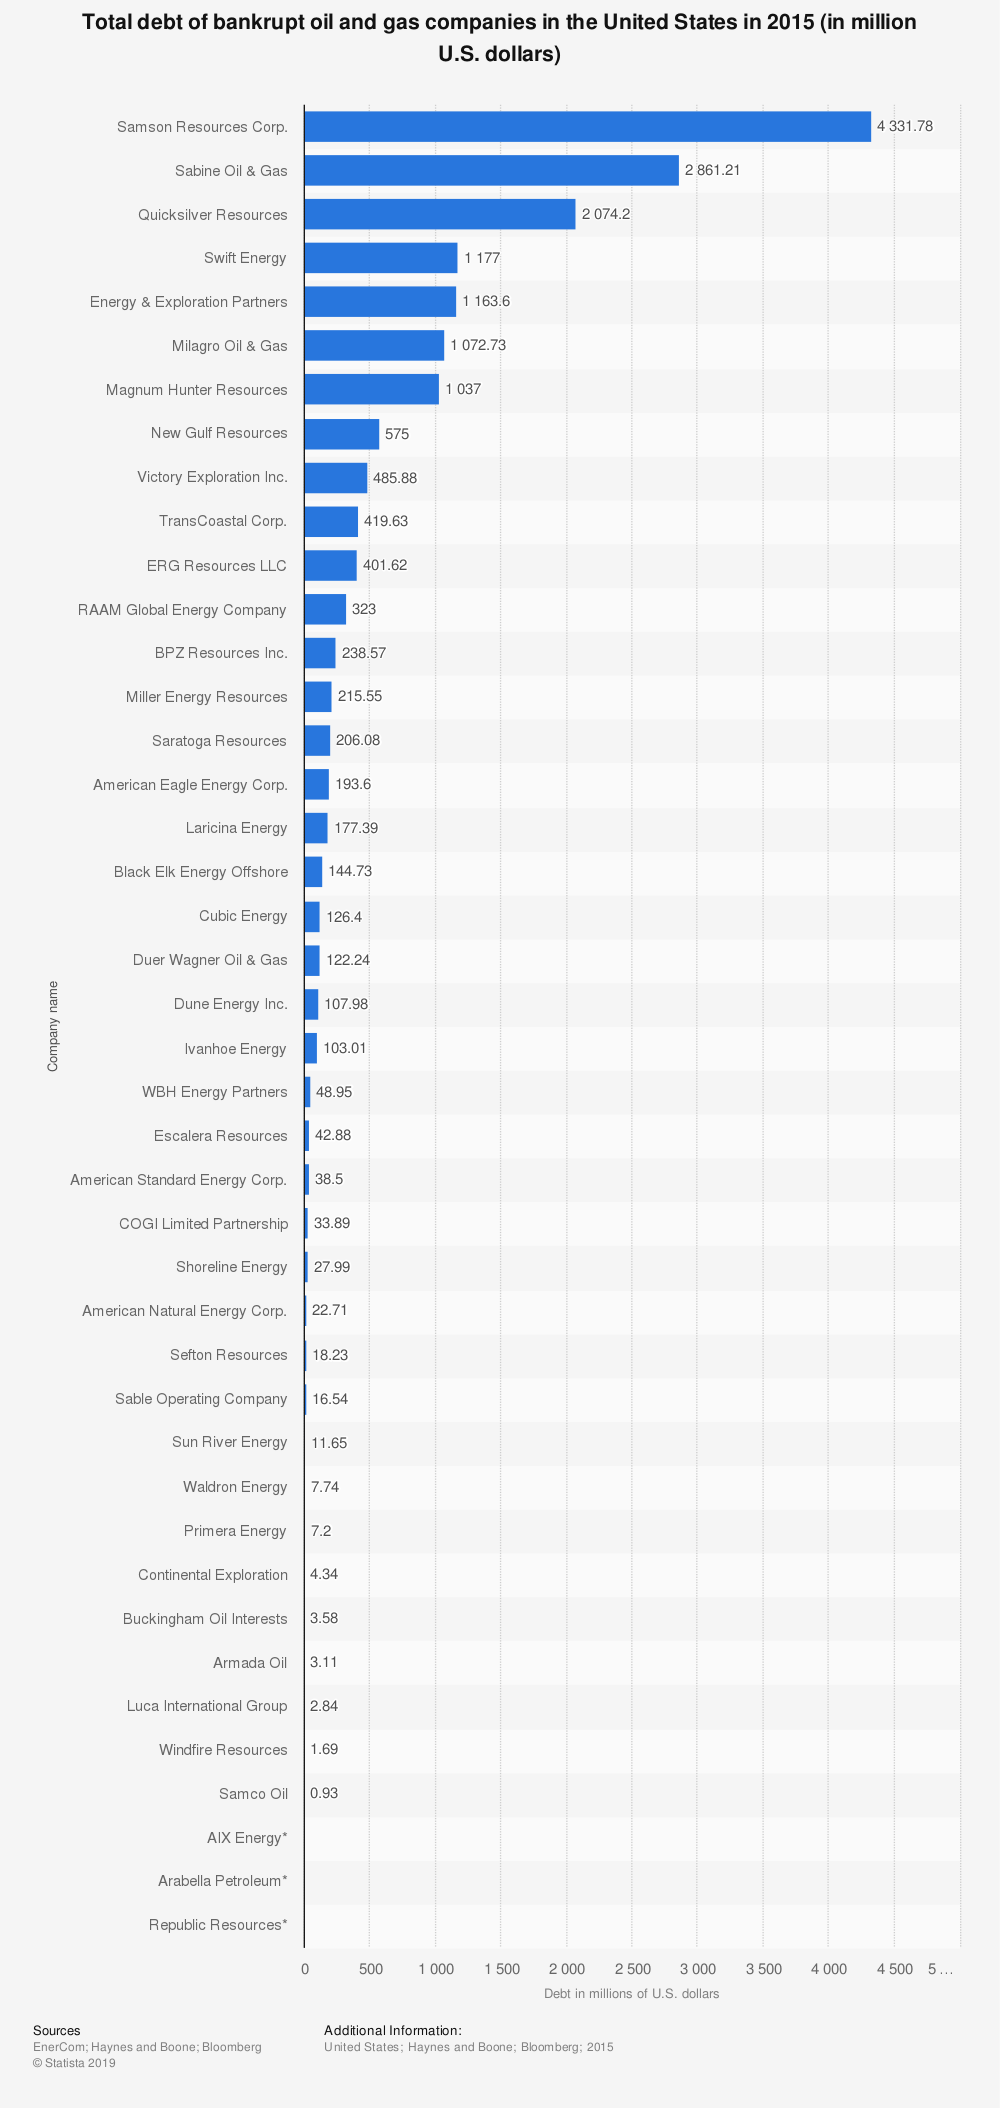 Statistic: Total debt of bankrupt oil and gas companies in the United States in 2015 (in million U.S. dollars) | Statista